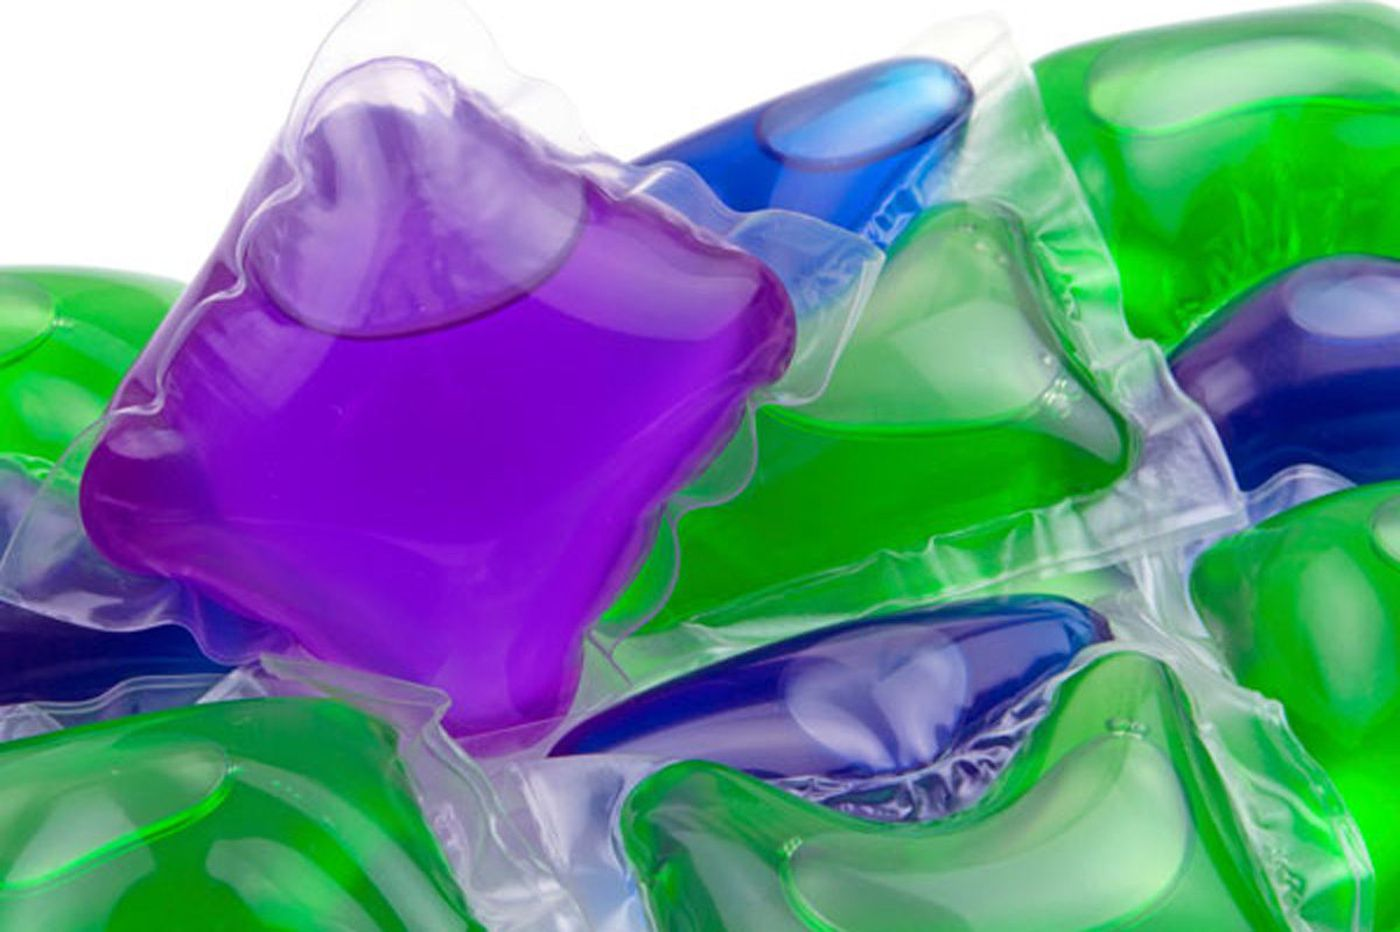 The laundry pod challenge is more dangerous than you think